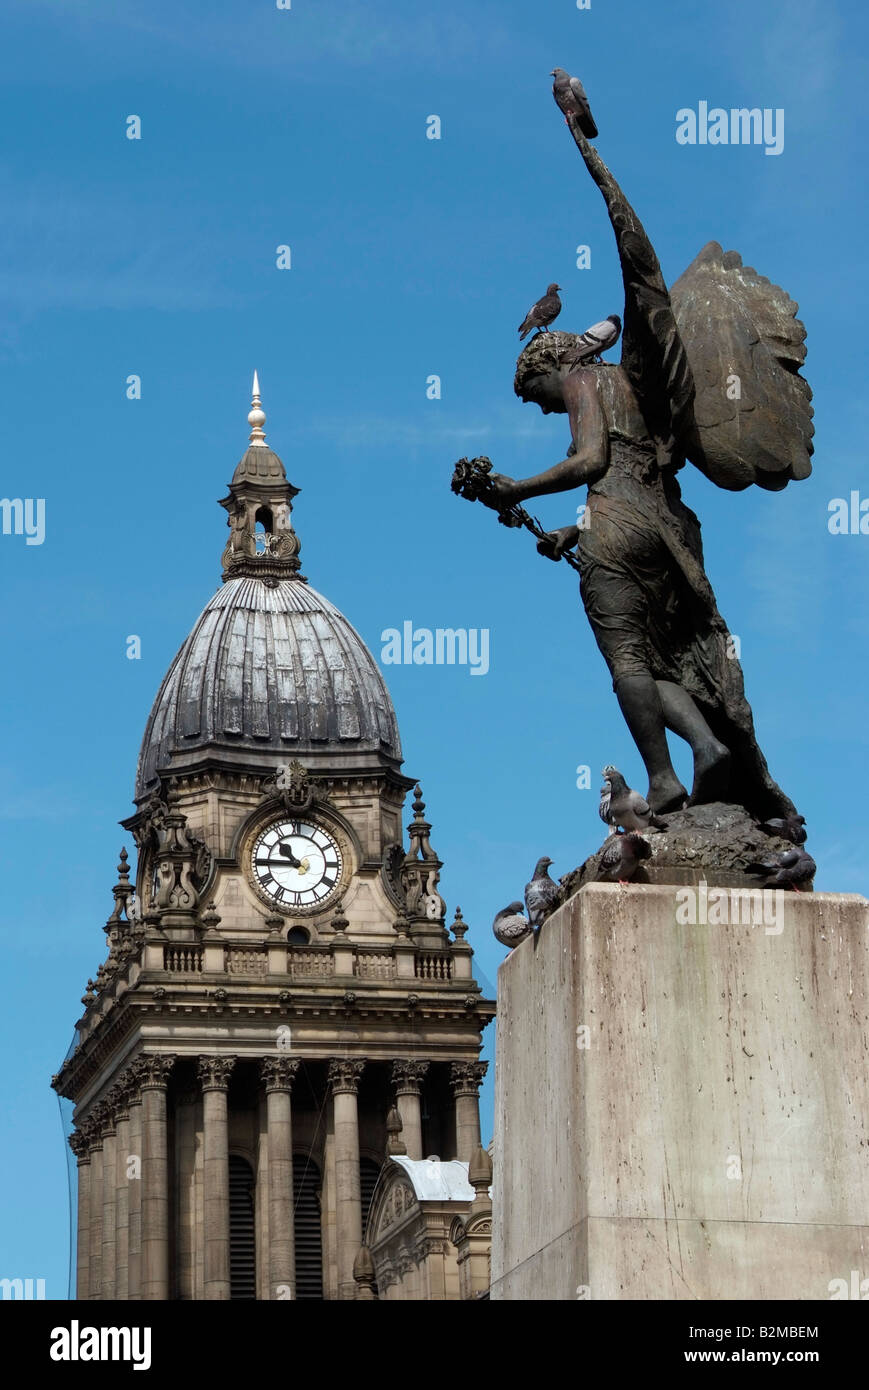 Leeds town hall clock tower seen beyond the war memorial angel sculpture - Stock Image